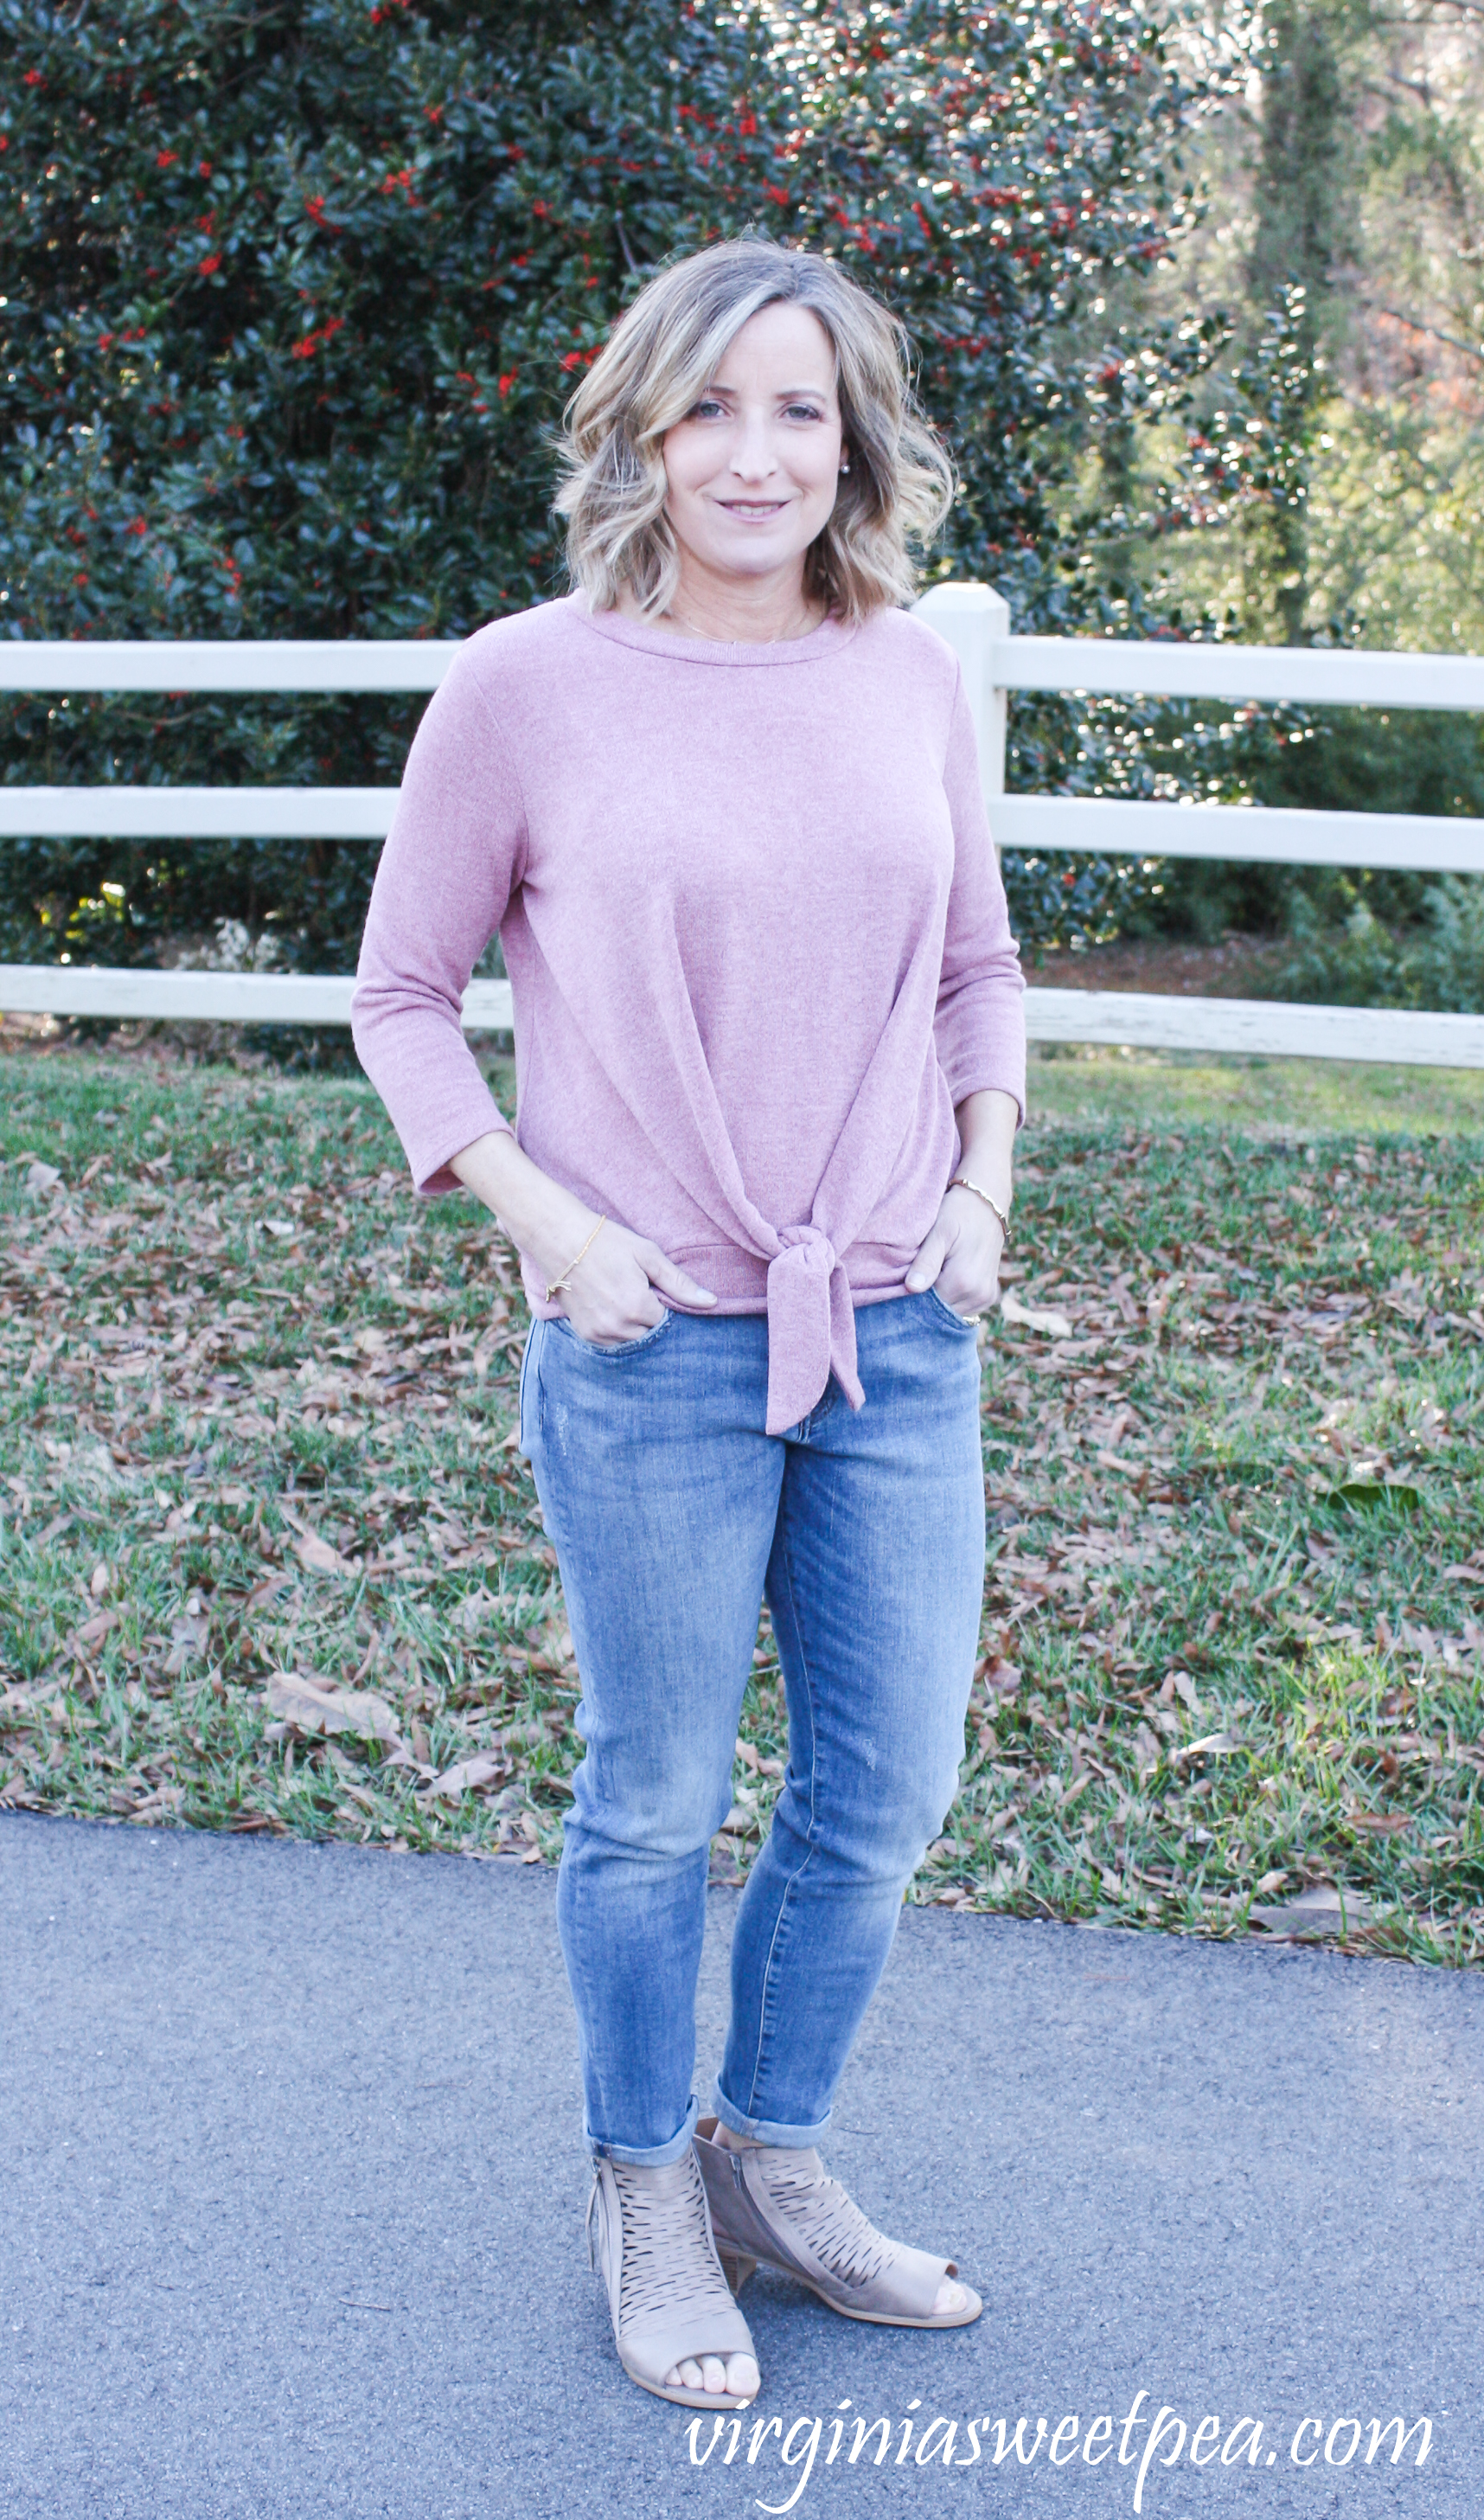 Stitch Fix Review for March 2019 - Warp + Weft Jenny Straight Leg Jean with Kaileigh Francine Tie Front Knit Top #stitchfix #stitchfixreview #stitchfix2019 #stitchfixspring #stitchfixjeans